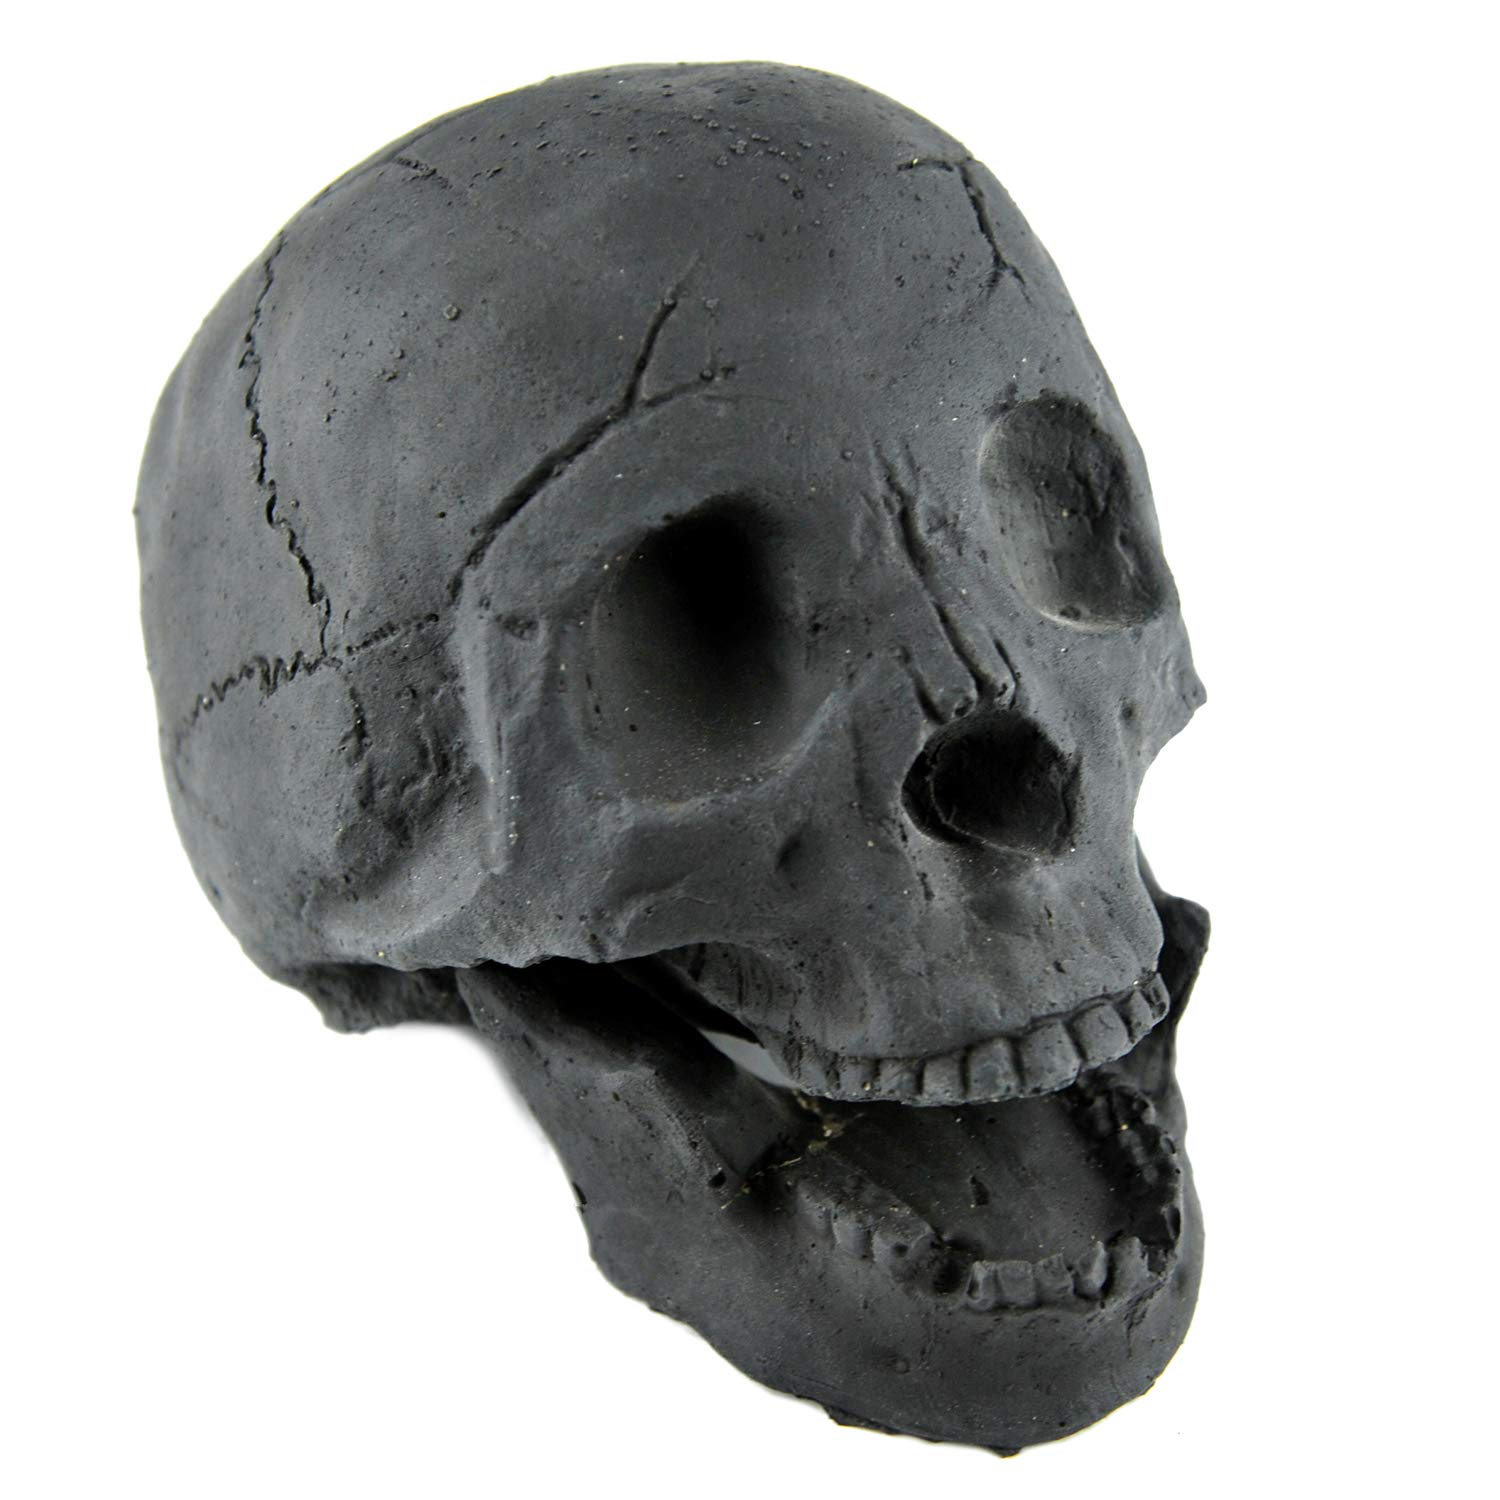 643657e0d8872 Myard Fireproof Imitated Human Fire Pit Skull Gas Log for NG, LP Wood  Fireplace, Firepit, Campfire, Halloween Decor, BBQ (Qty 1, Black)